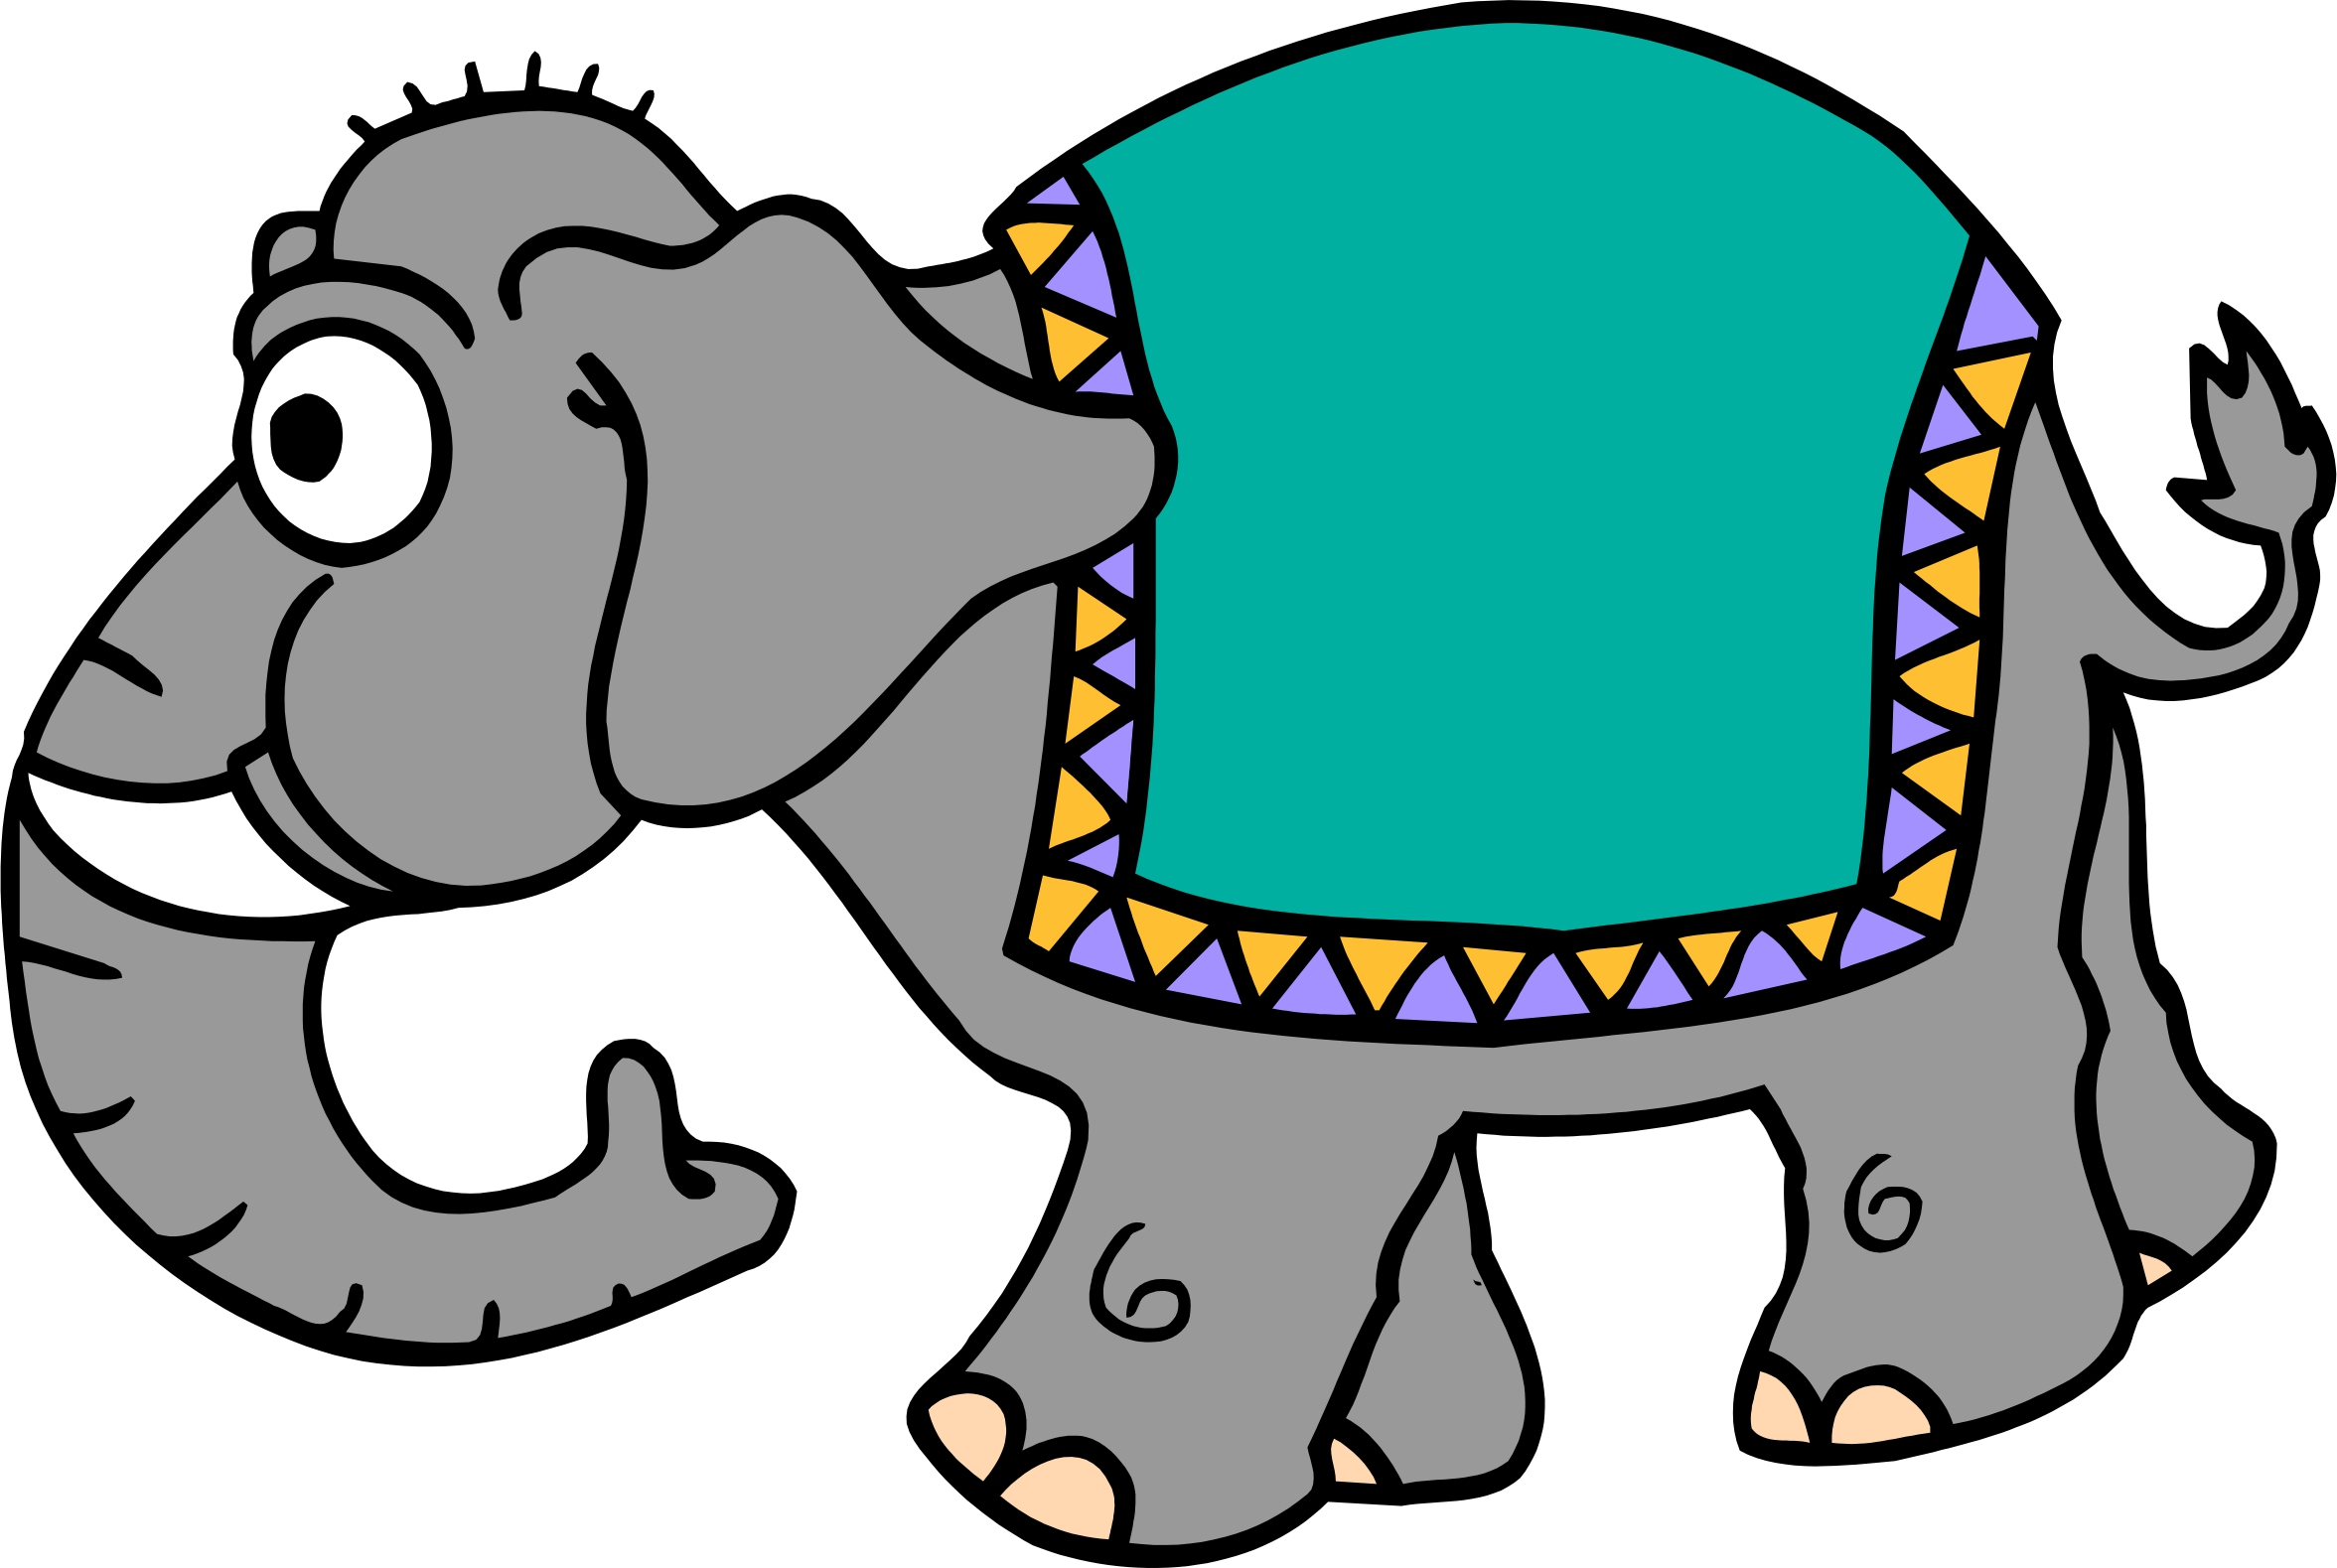 3d elephant clipart graphic black and white download Free Elephants Cartoon, Download Free Clip Art, Free Clip Art on ... graphic black and white download